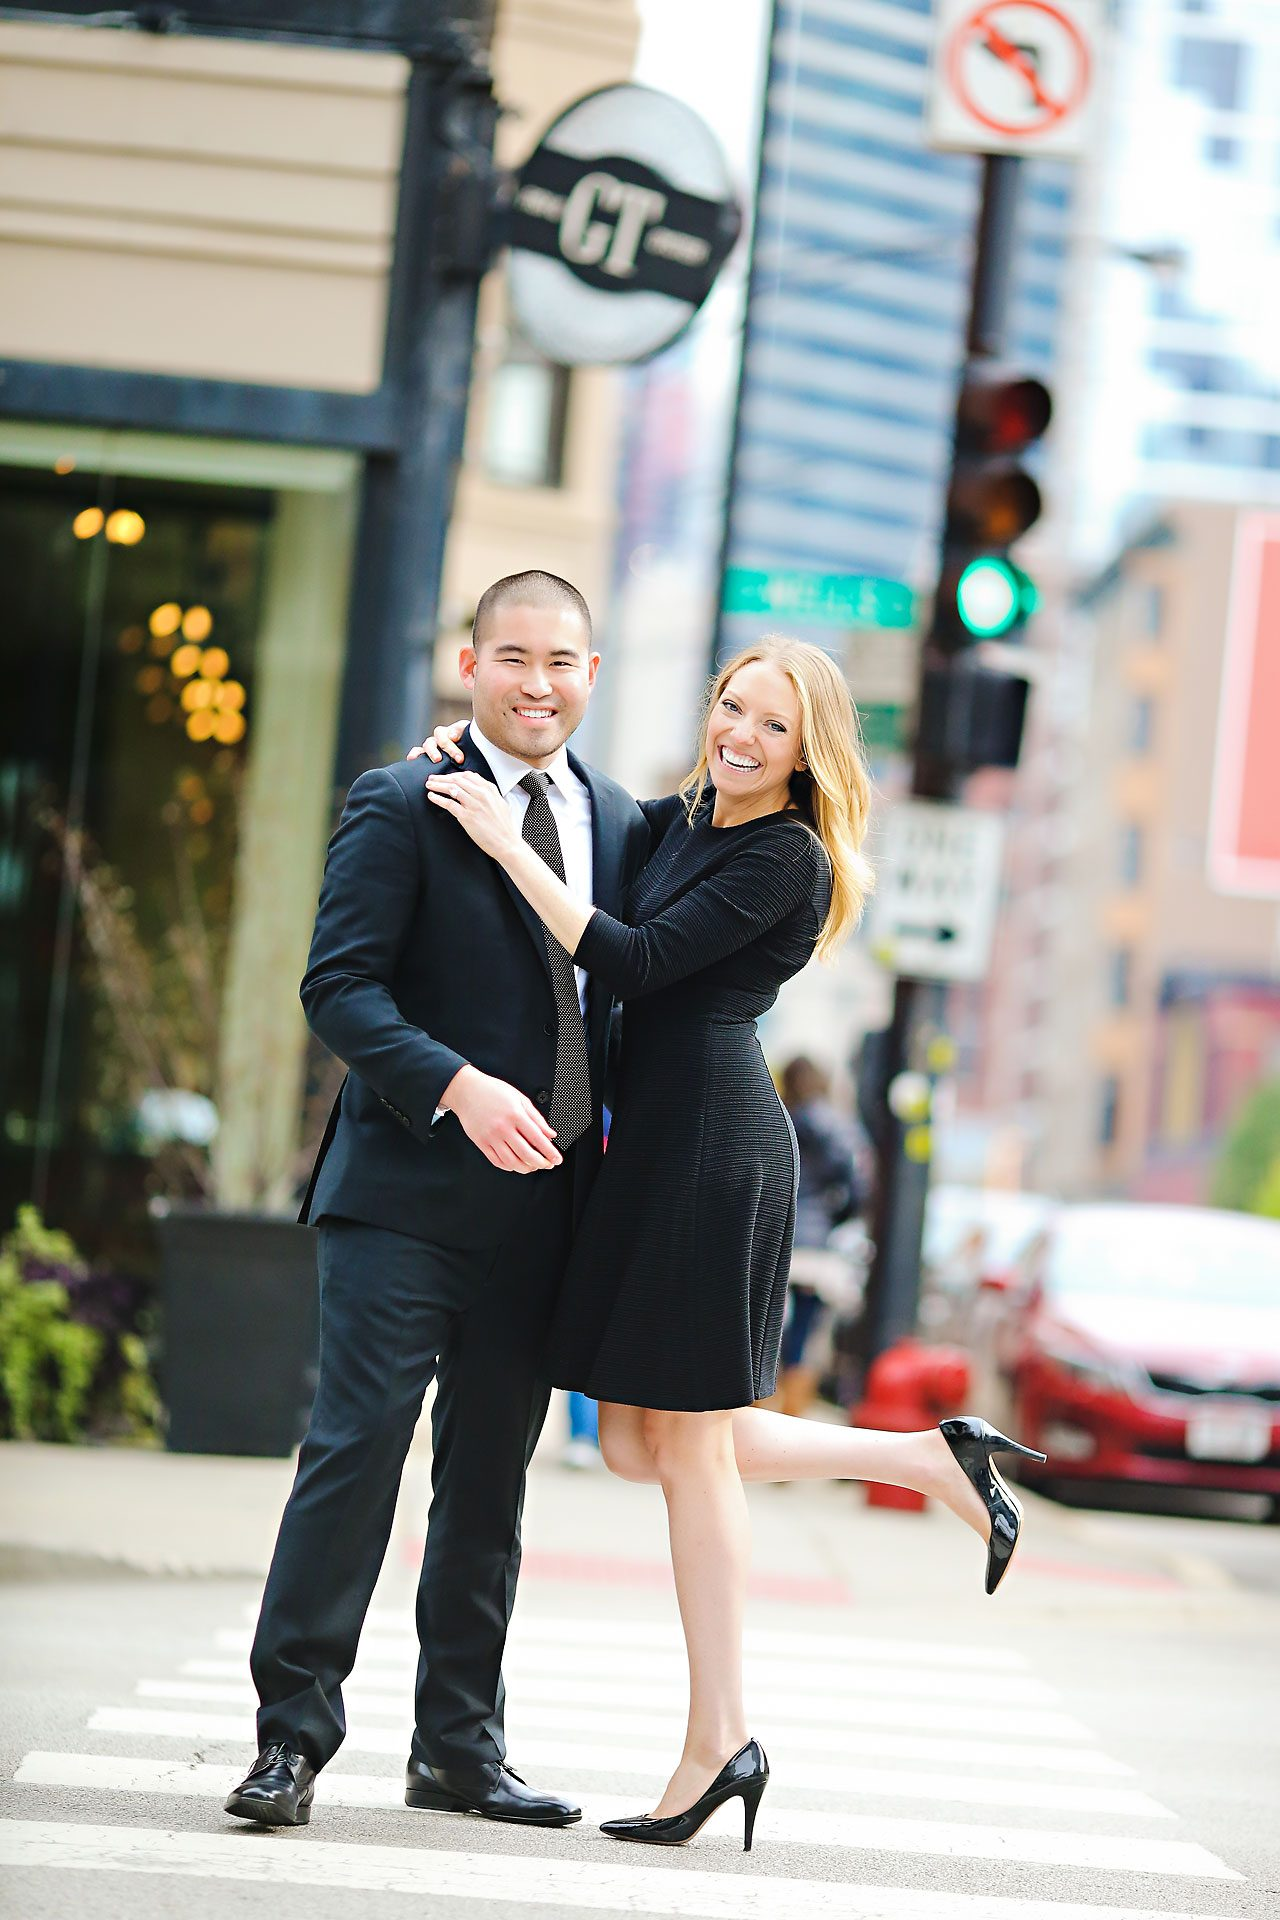 mallory wayne chicago engagement session 057